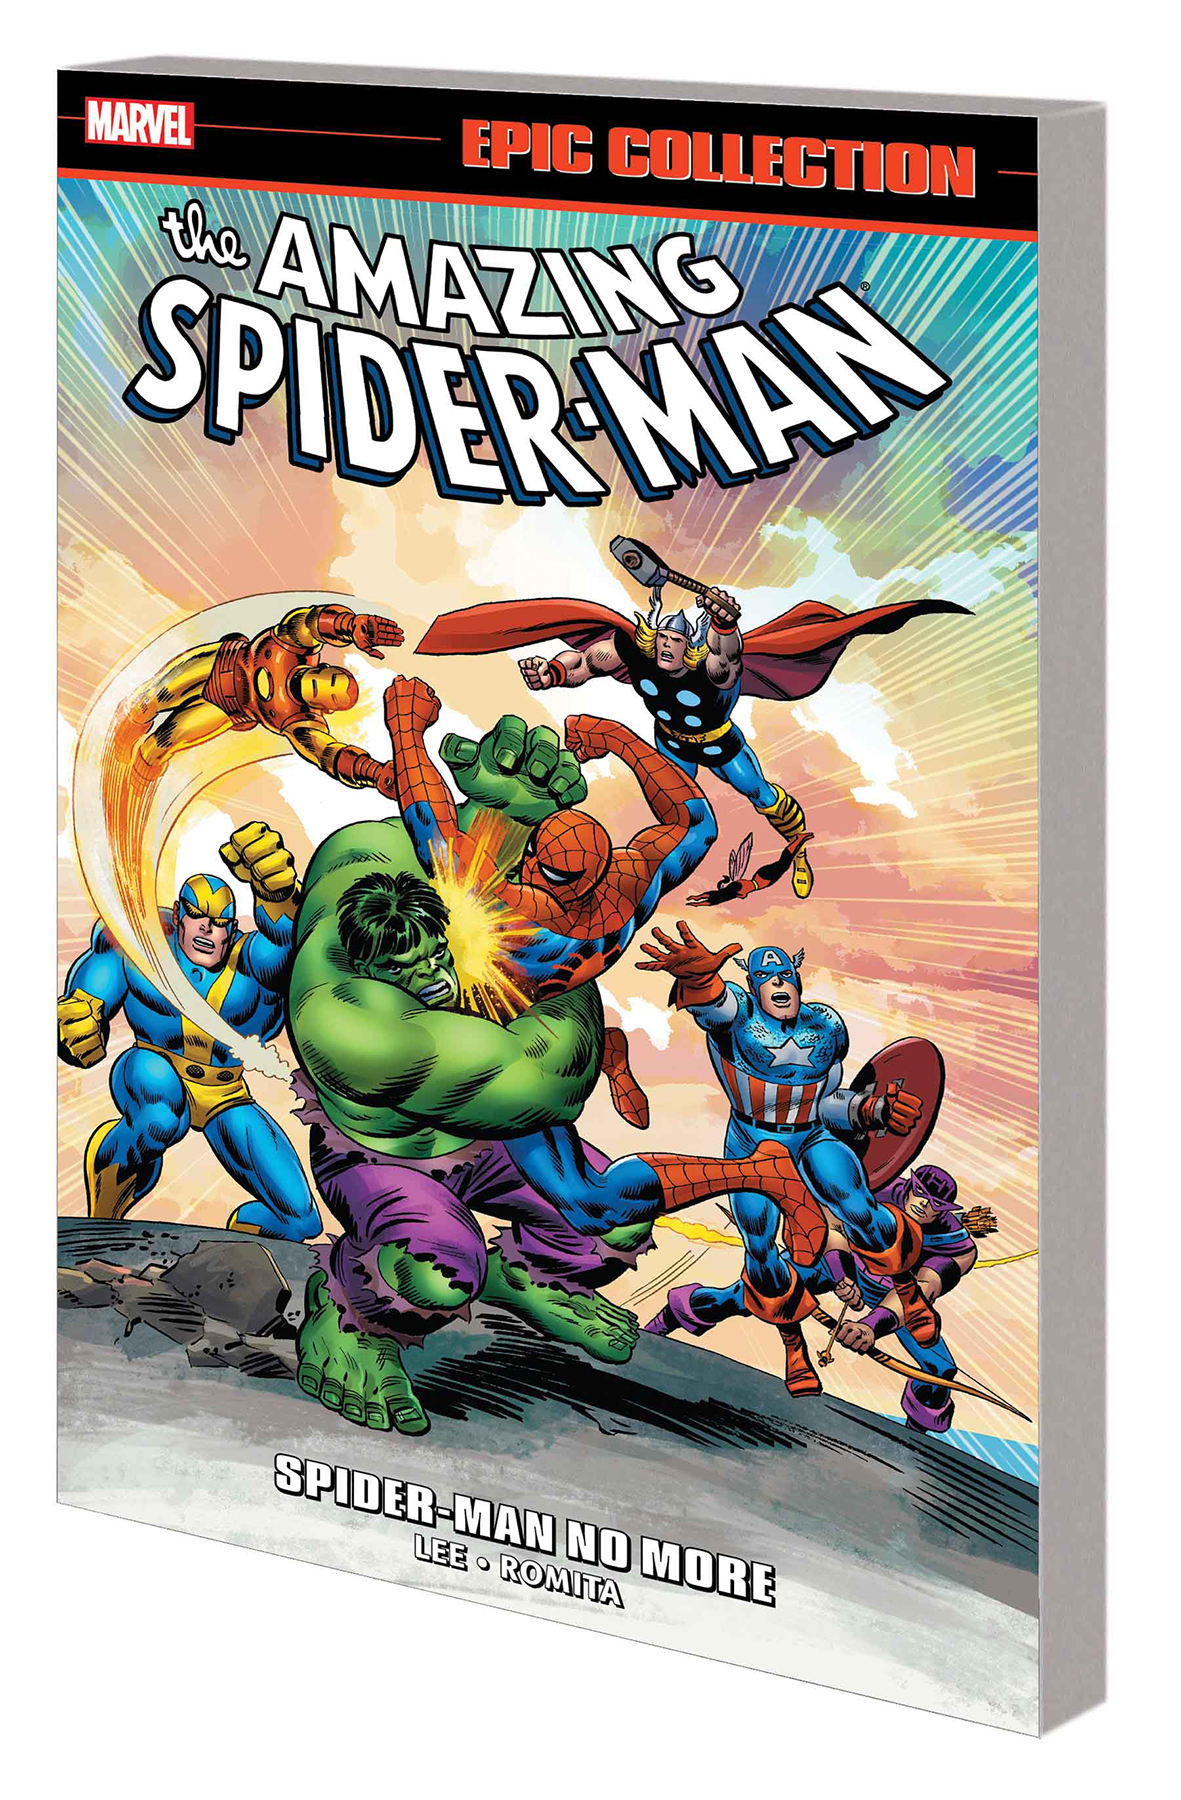 AMAZING SPIDER-MAN EPIC COLLECTION SPIDER-MAN NO MORE TP